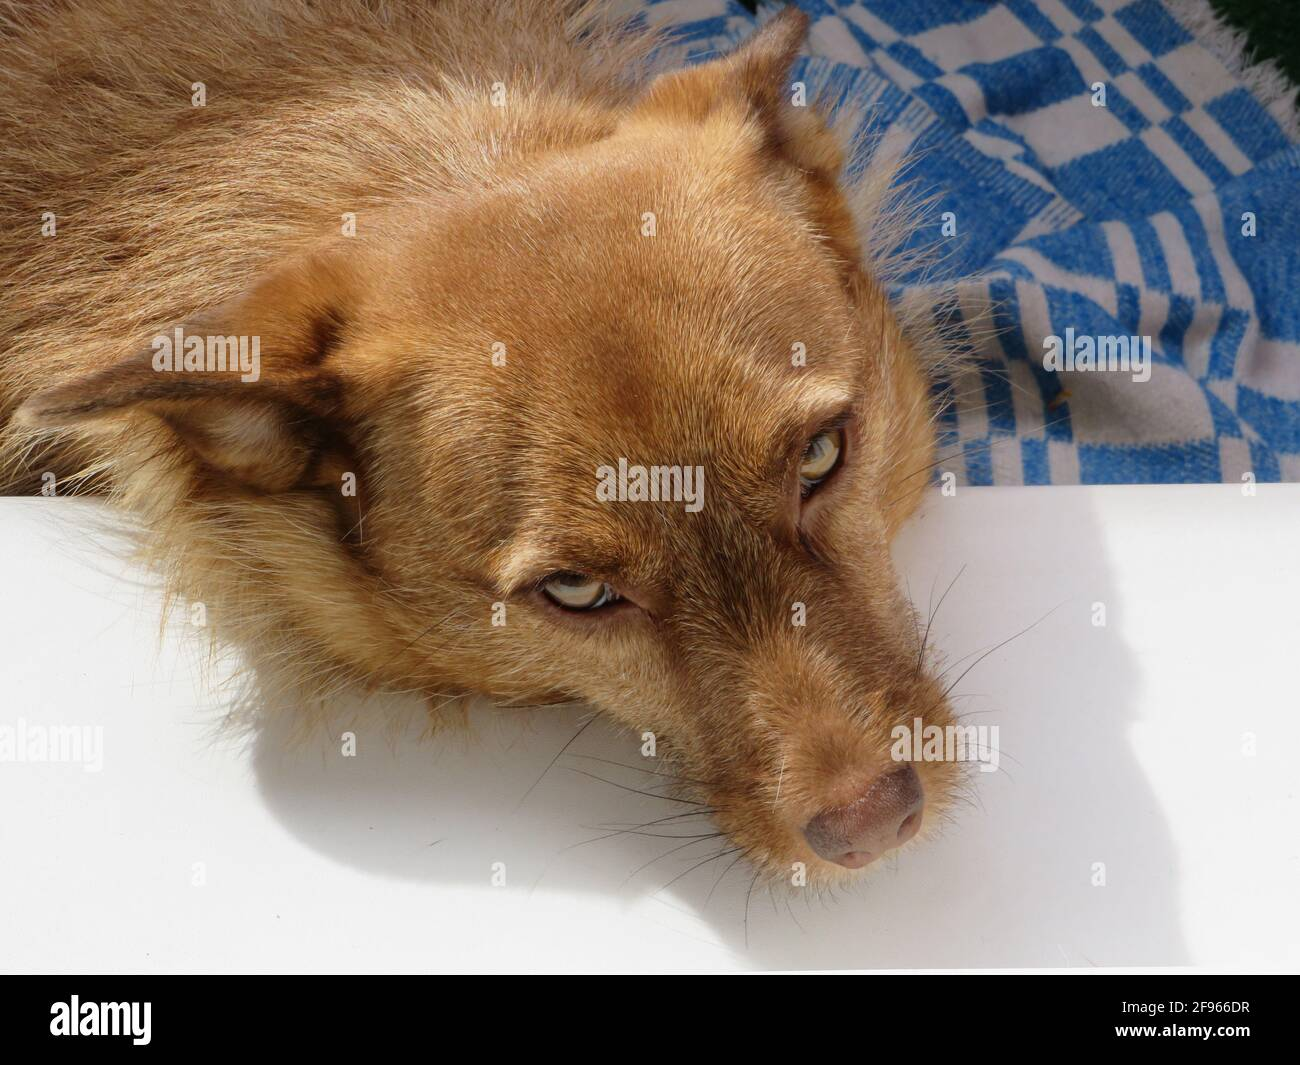 An adopted dog from Abkhazia is sunbathing on the apartment's balcony, St Petersburg, Russia Stock Photo